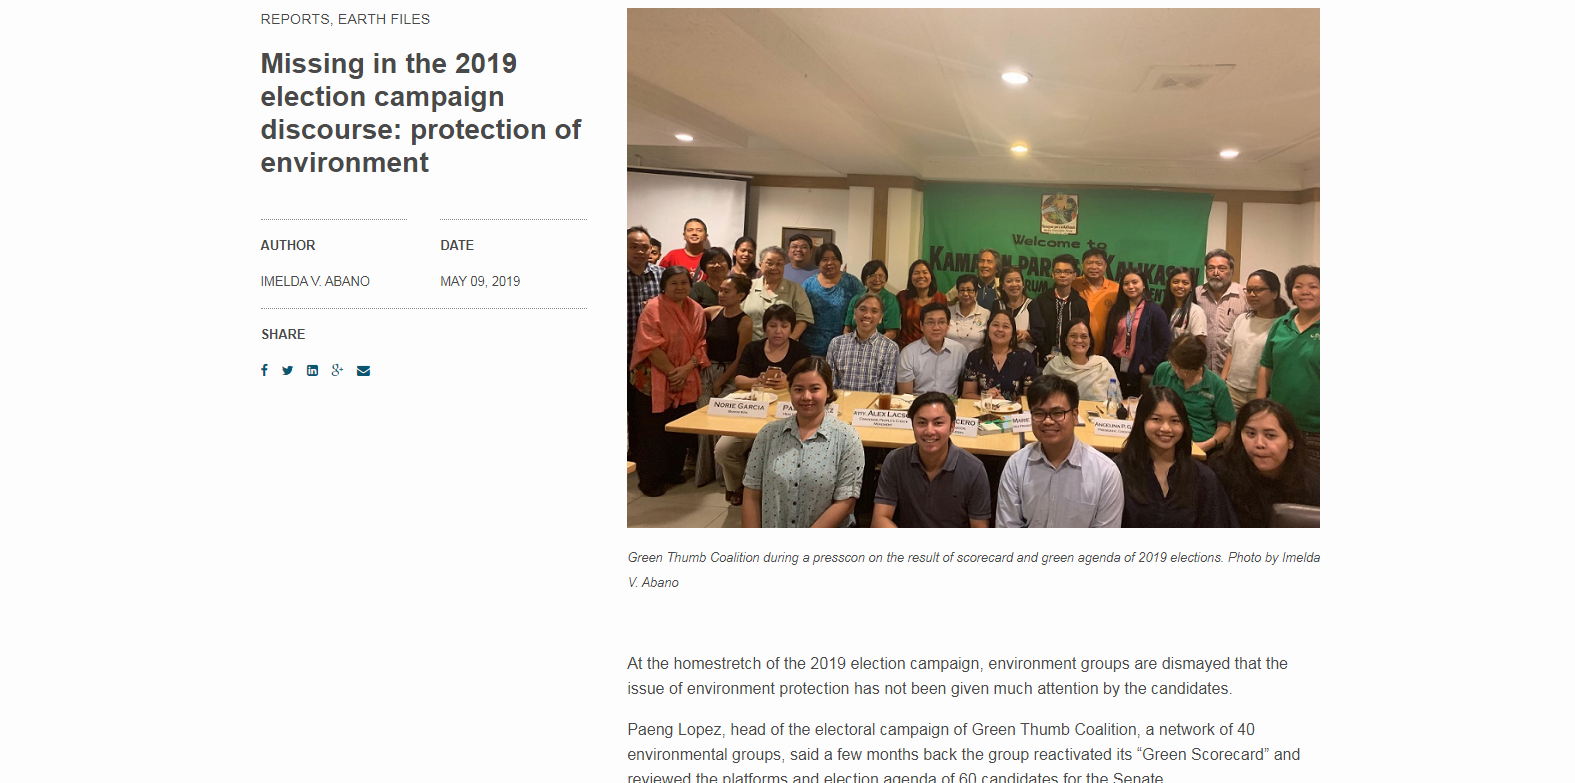 Missing in the 2019 election campaign discourse: protection of the environment